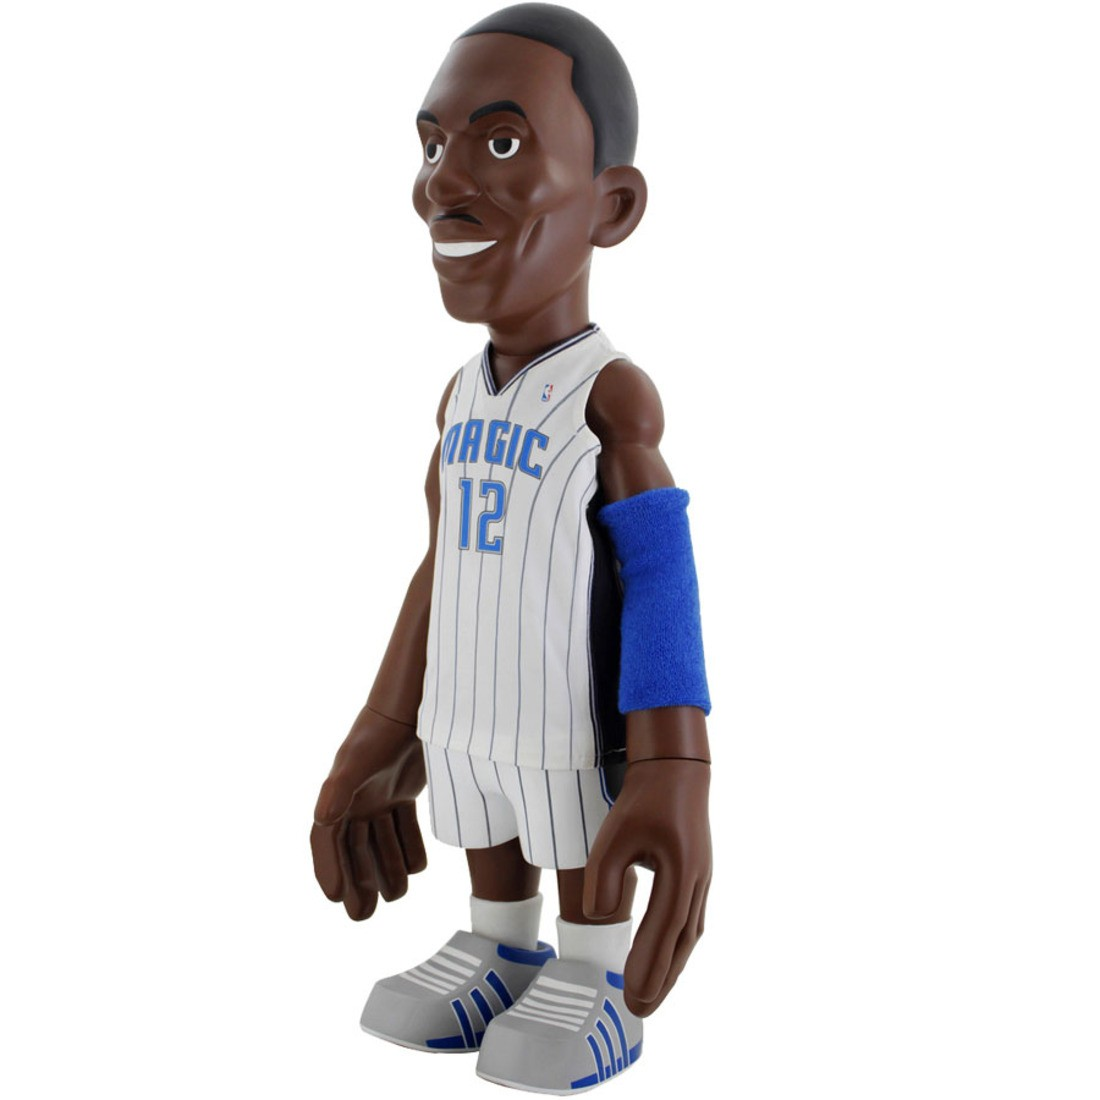 MINDstyle x NBA Dwight Howard 18 Inch Figure - Home Jersey (white) - BAIT SDCC Exclusive